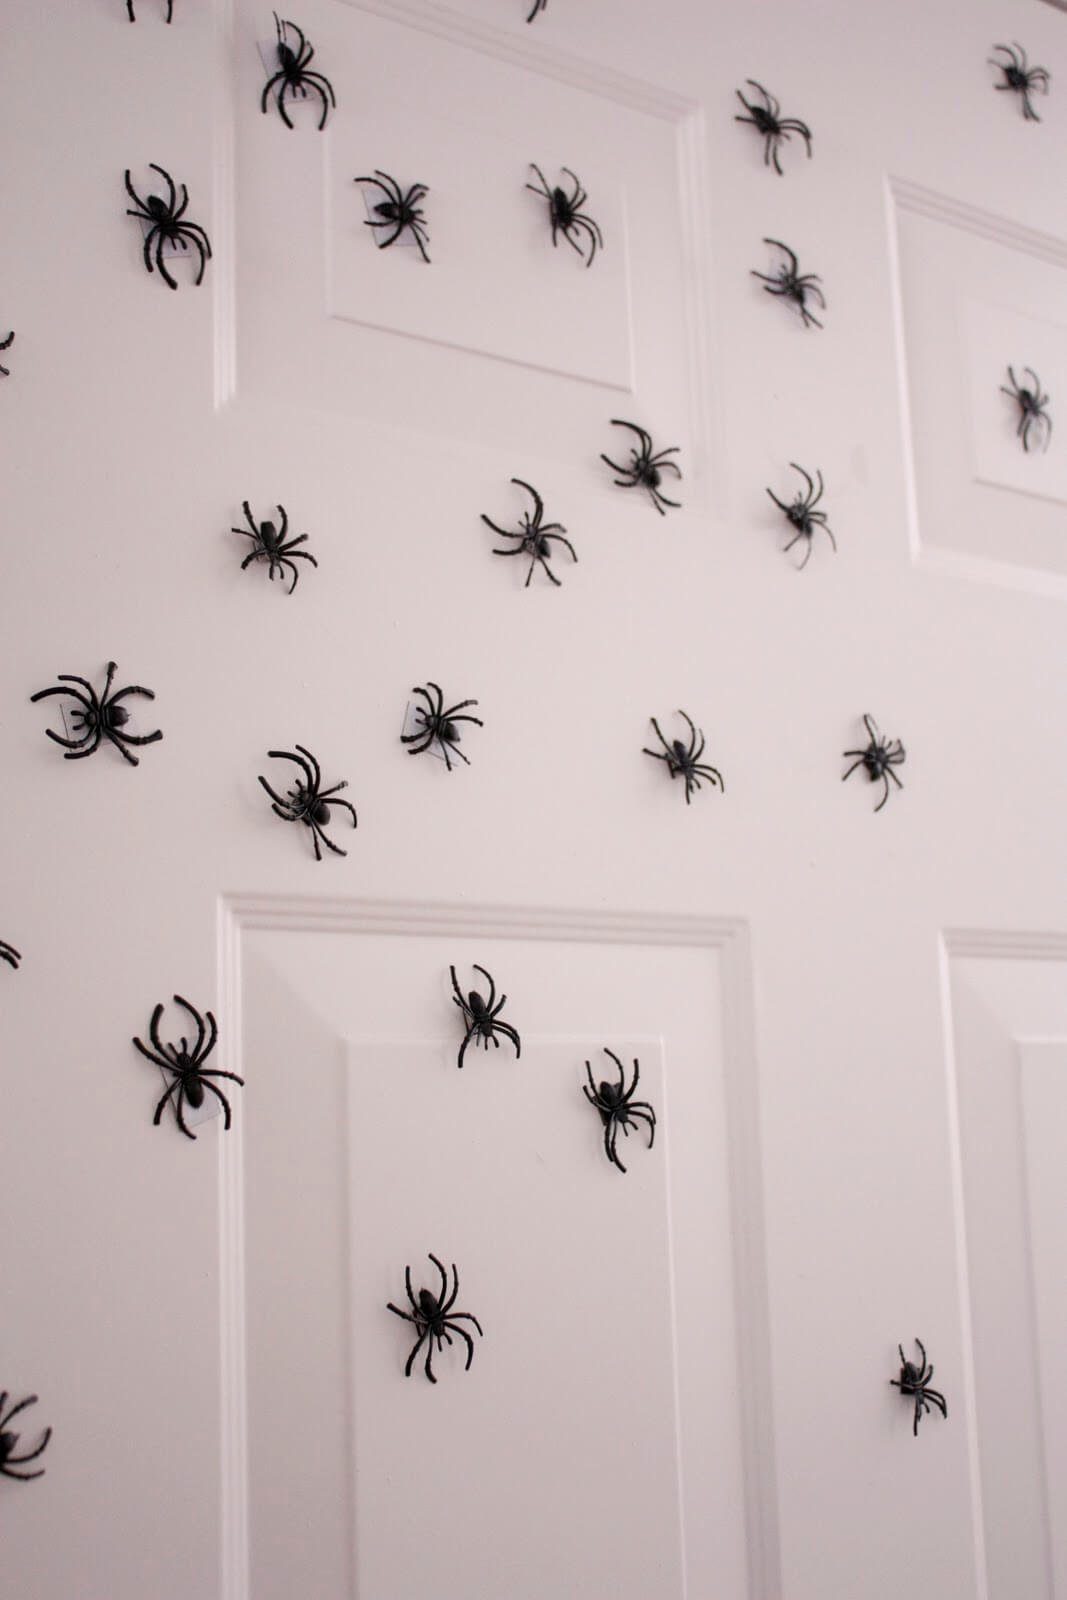 Super Spiders Invade | DIY Indoor Halloween Decorating Ideas